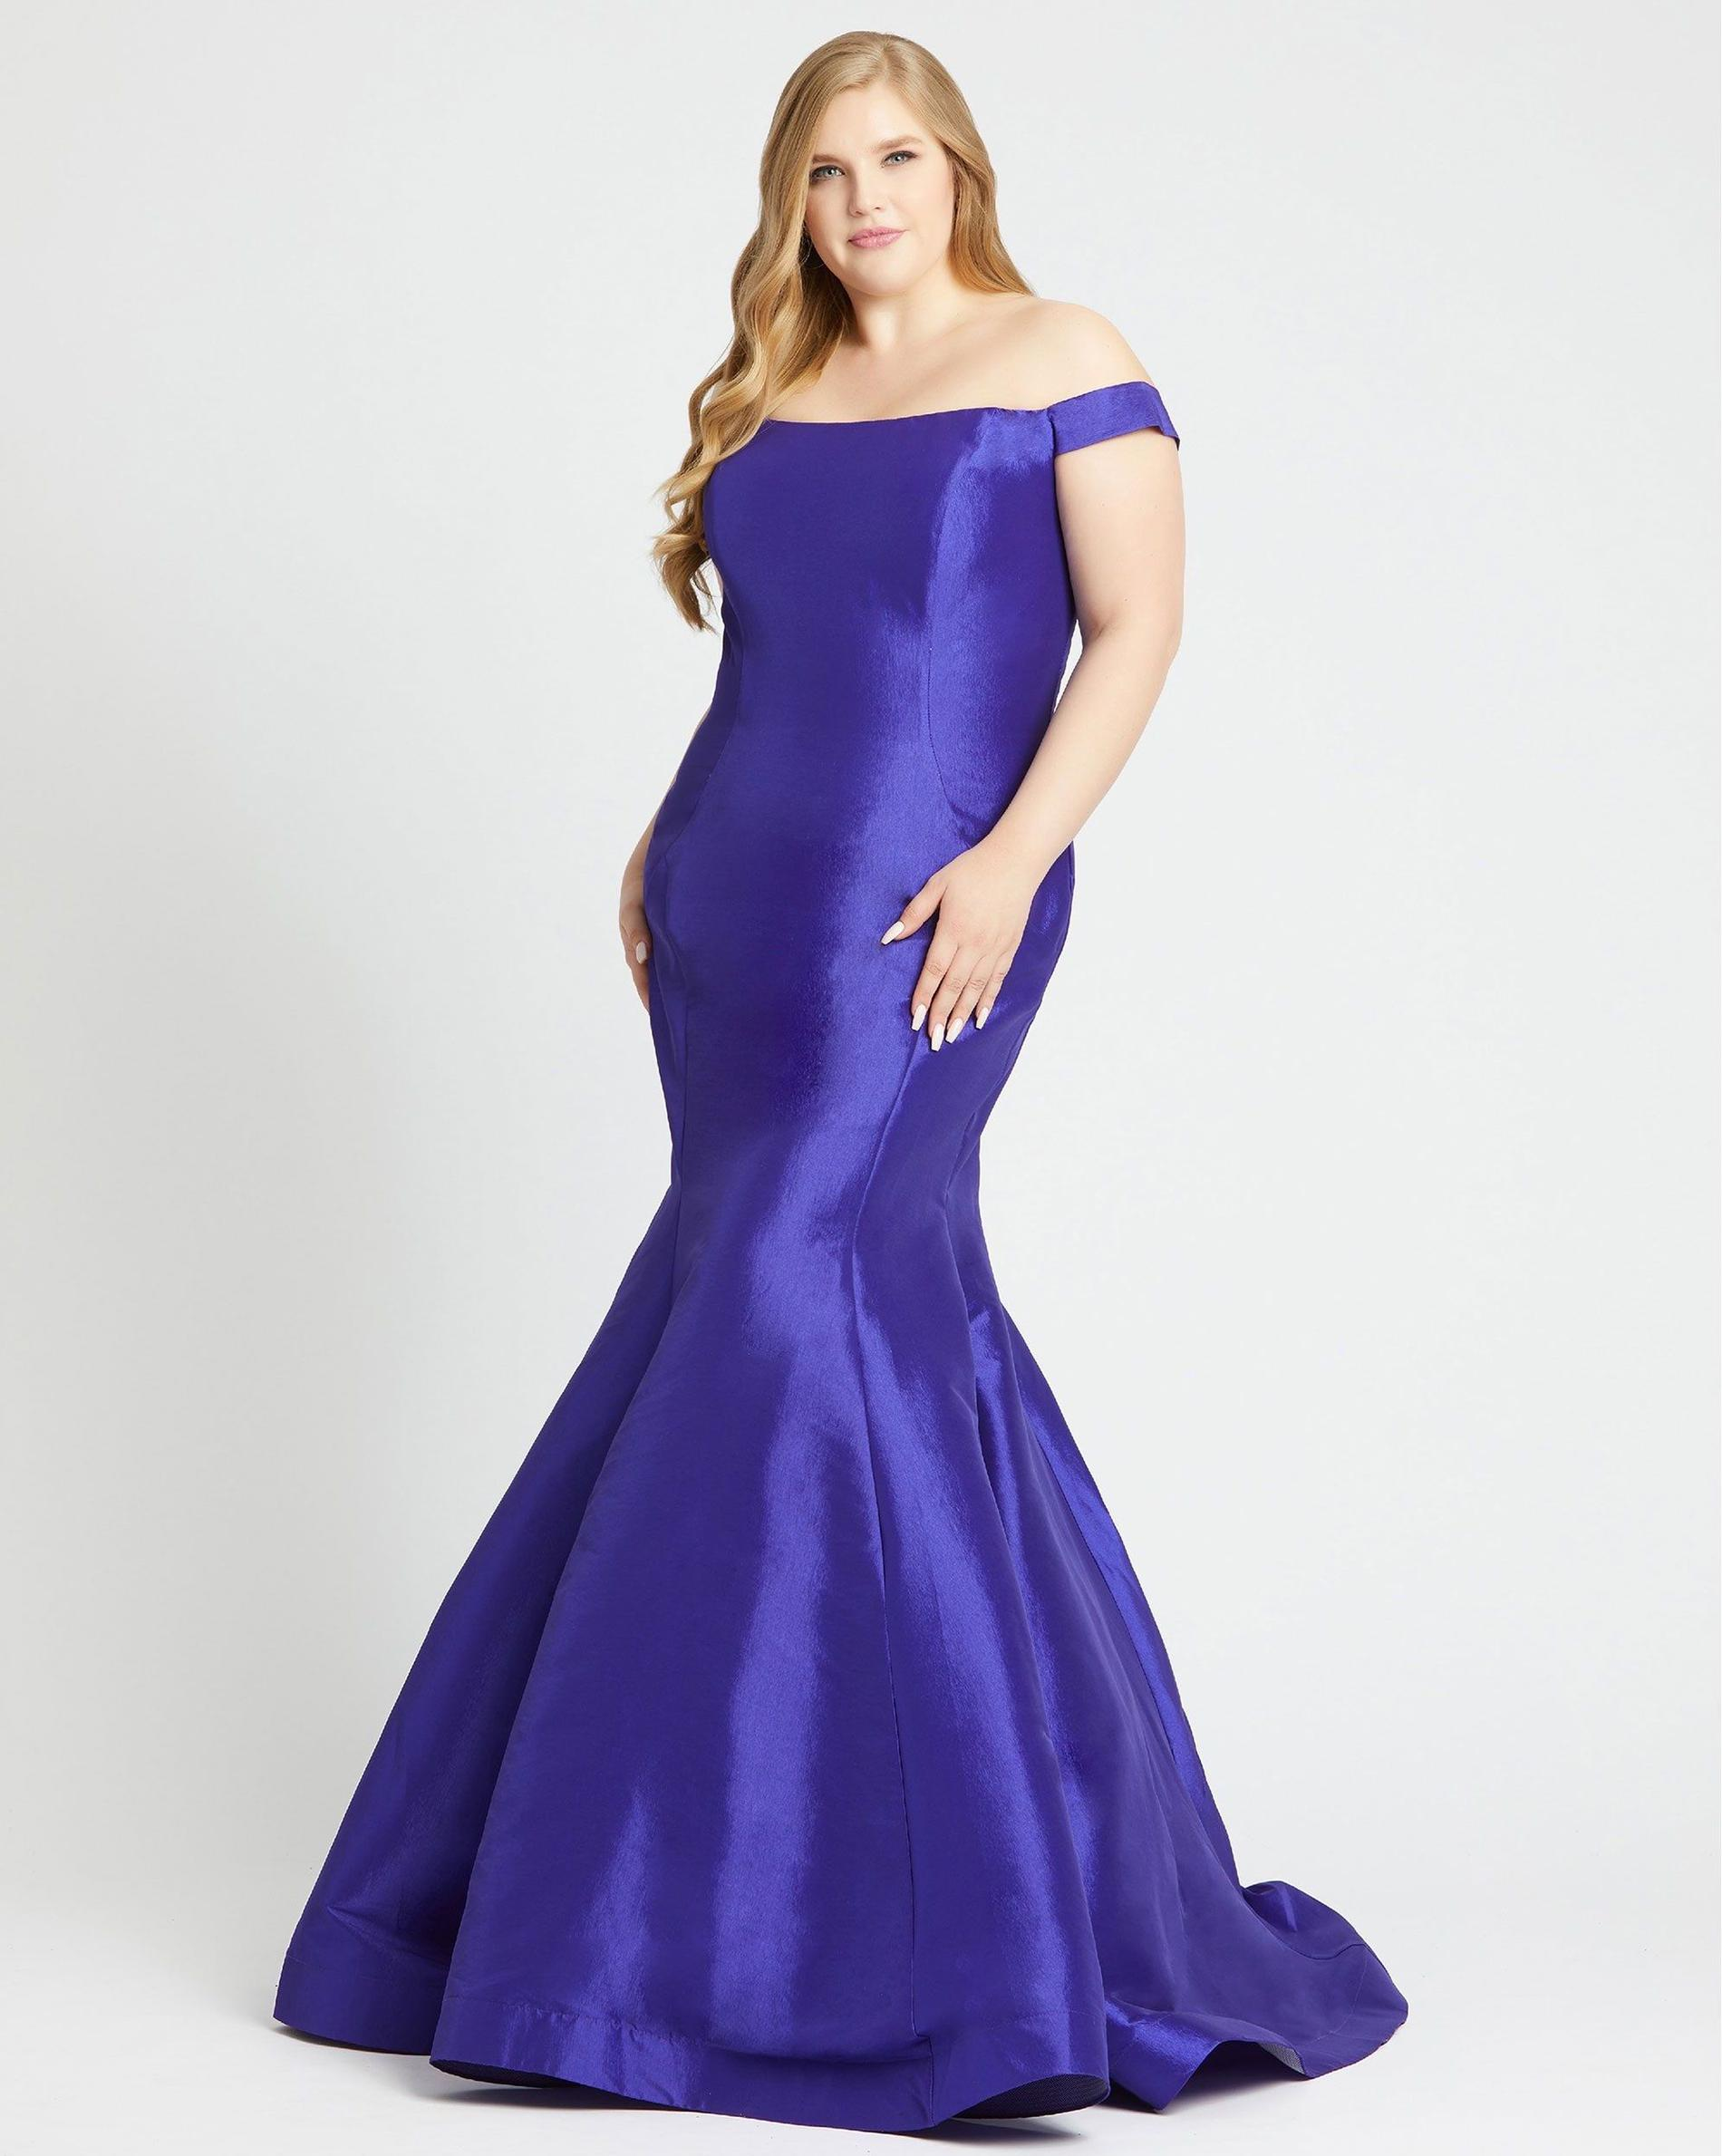 Style 66803 Mac Duggal Purple Size 22 Tall Height Wedding Guest Mermaid Dress on Queenly